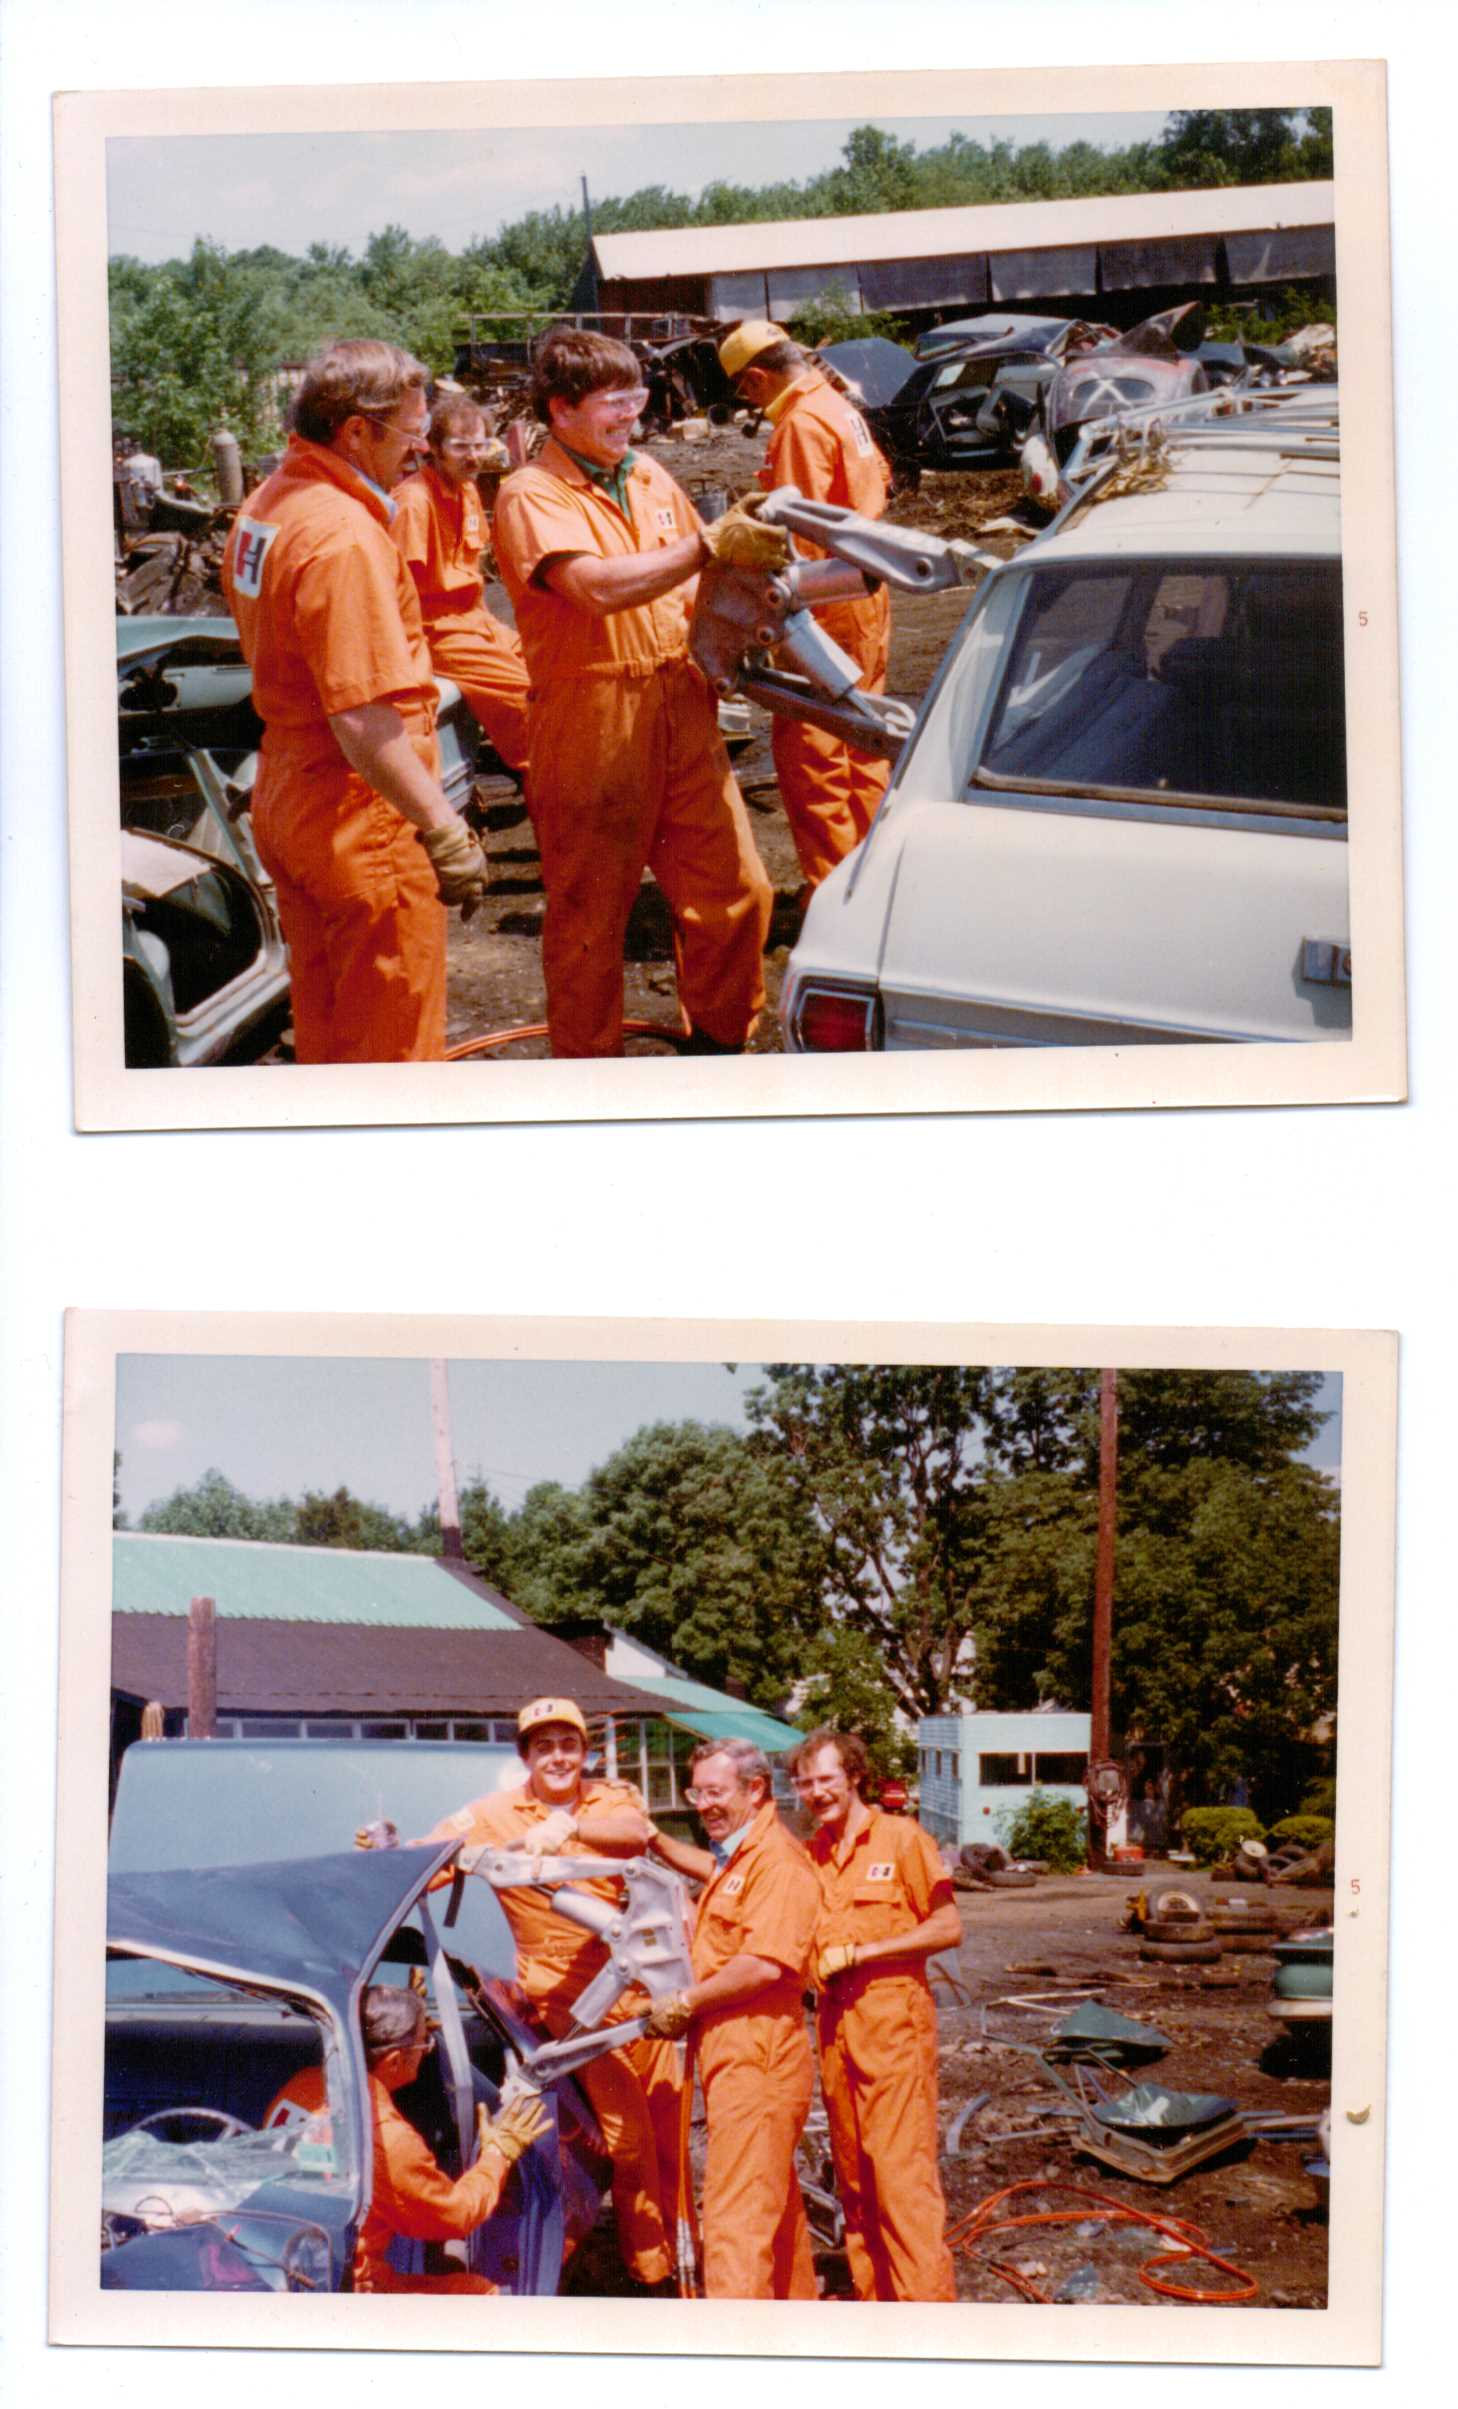 Training the sales and distribution team. Dick Otte (top: at left) and (bottom: in center holding the tool). Training was always serious business, and saving lives was most often a gruesome task, but Dick believed in taking time for fun whenever possible.